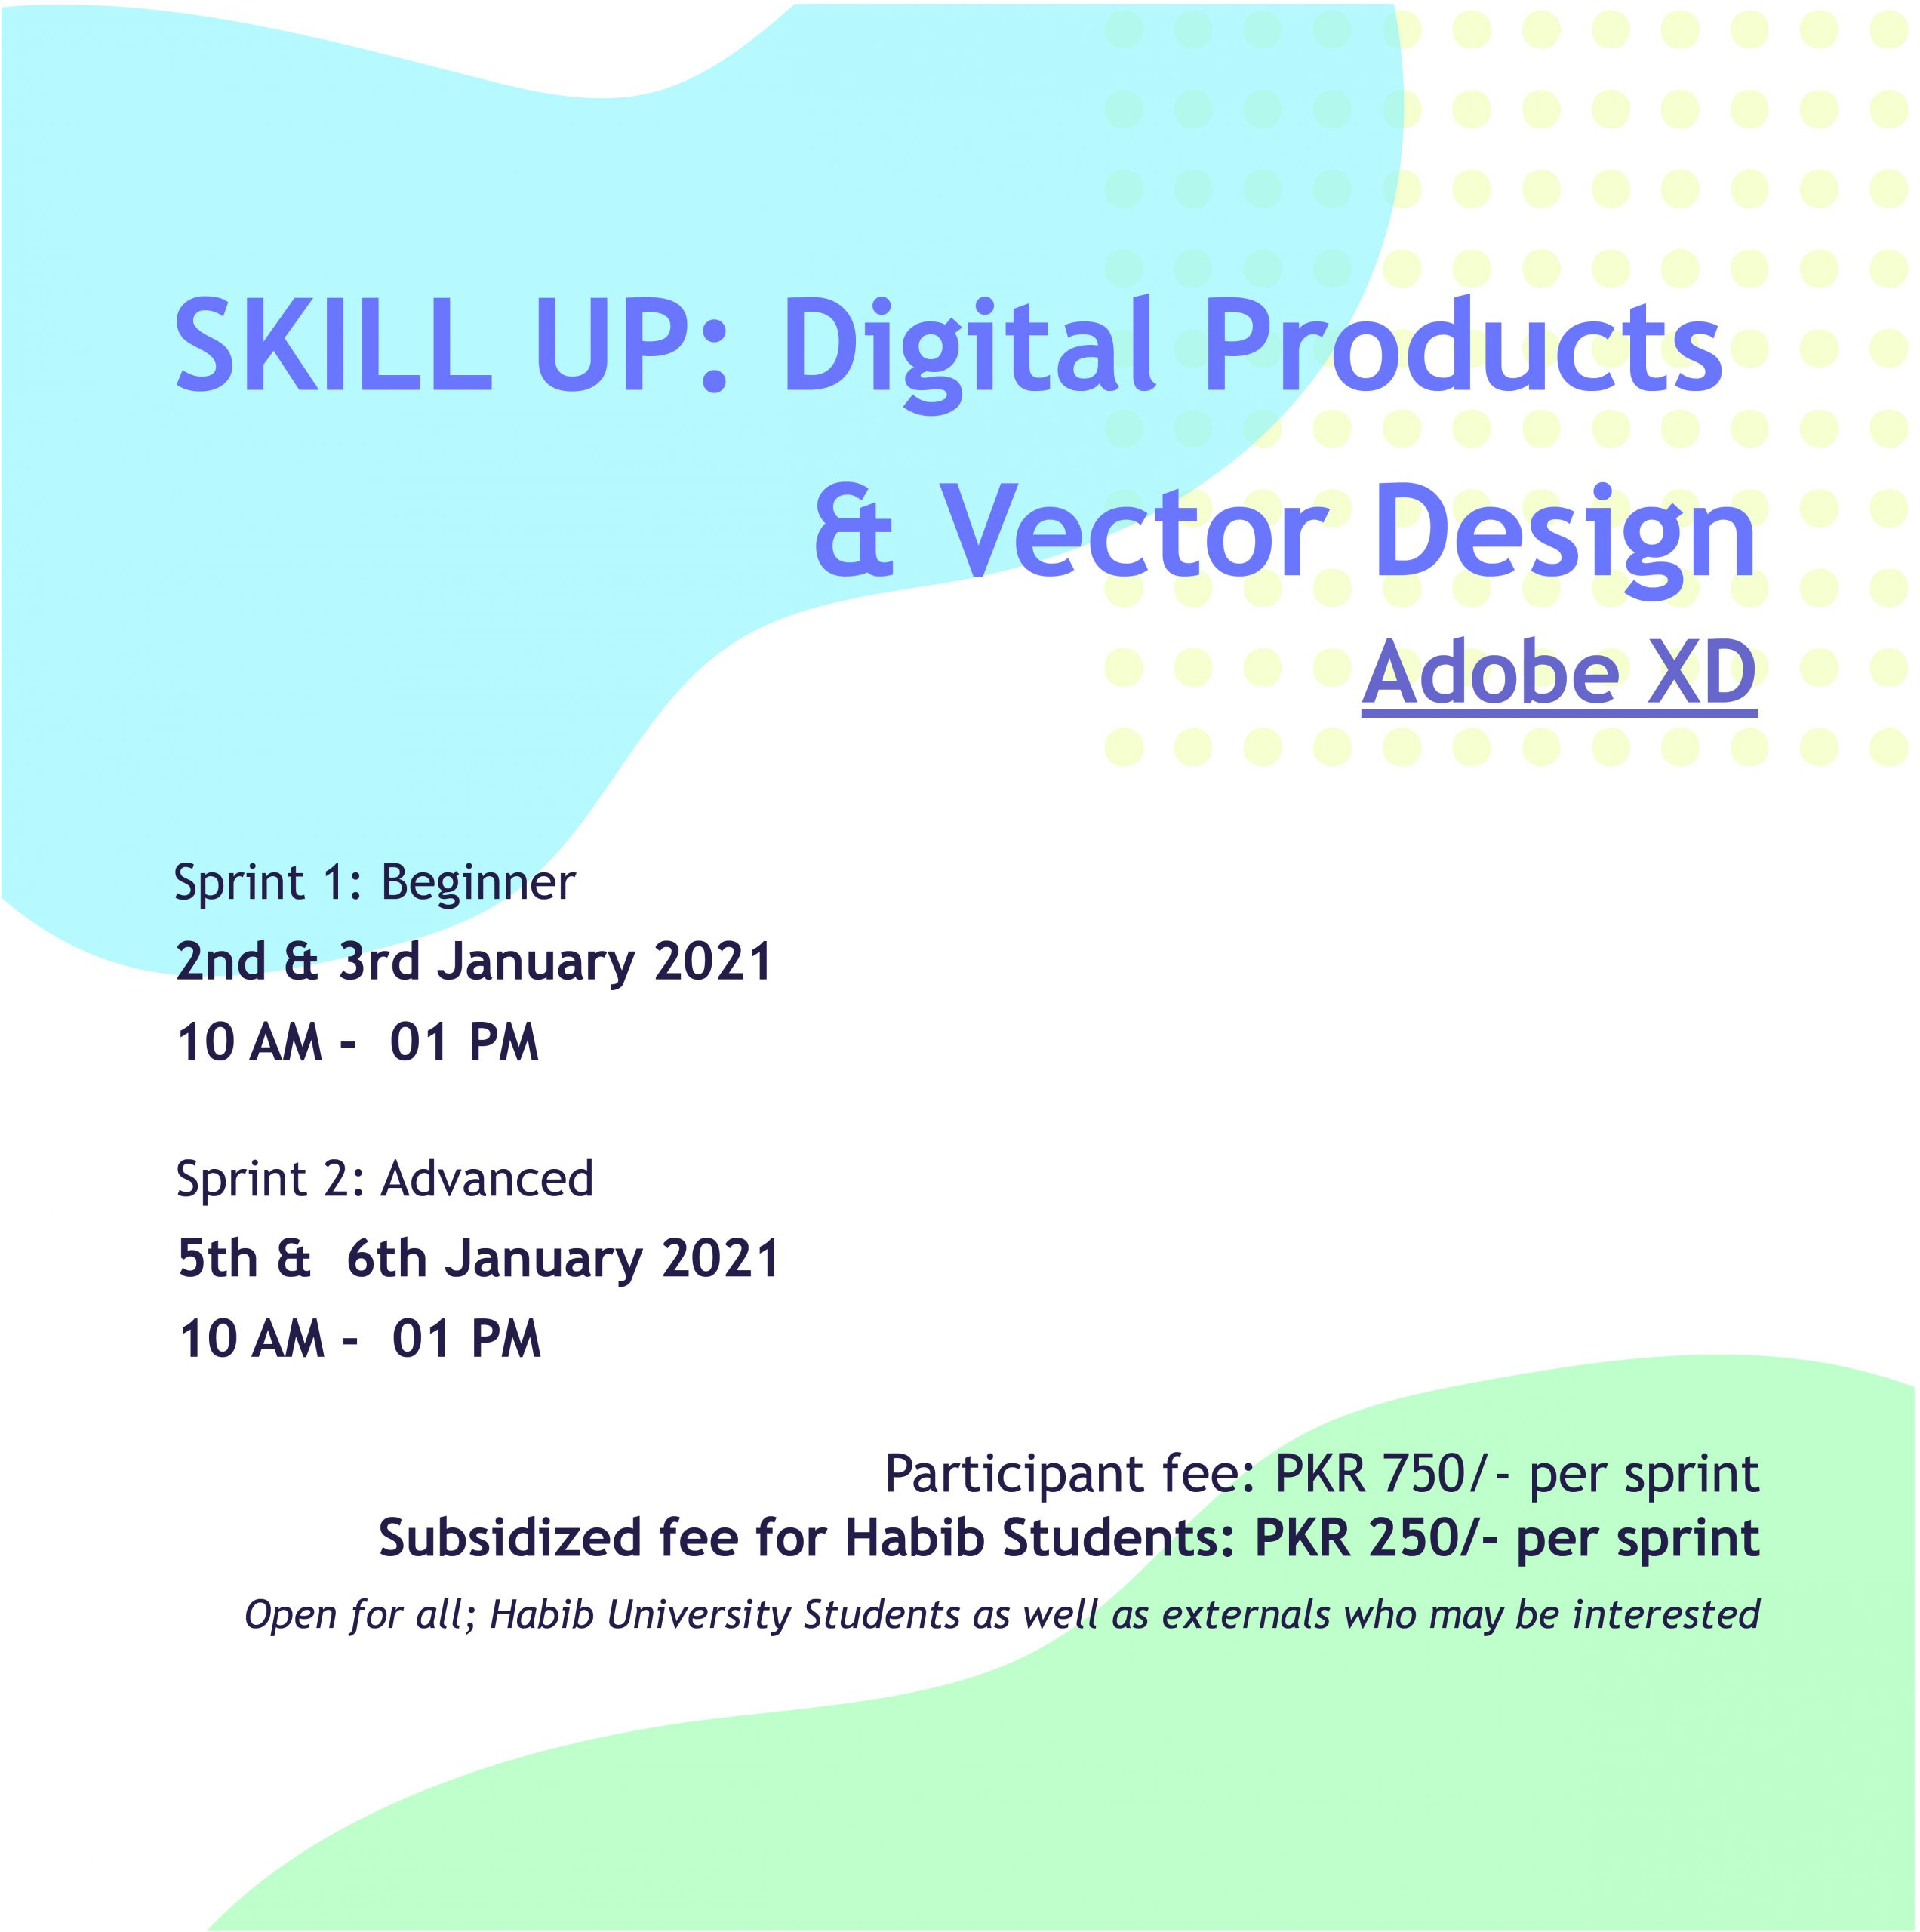 Skill Up: Introduction to Digital Products & Vector Design – Adobe XD